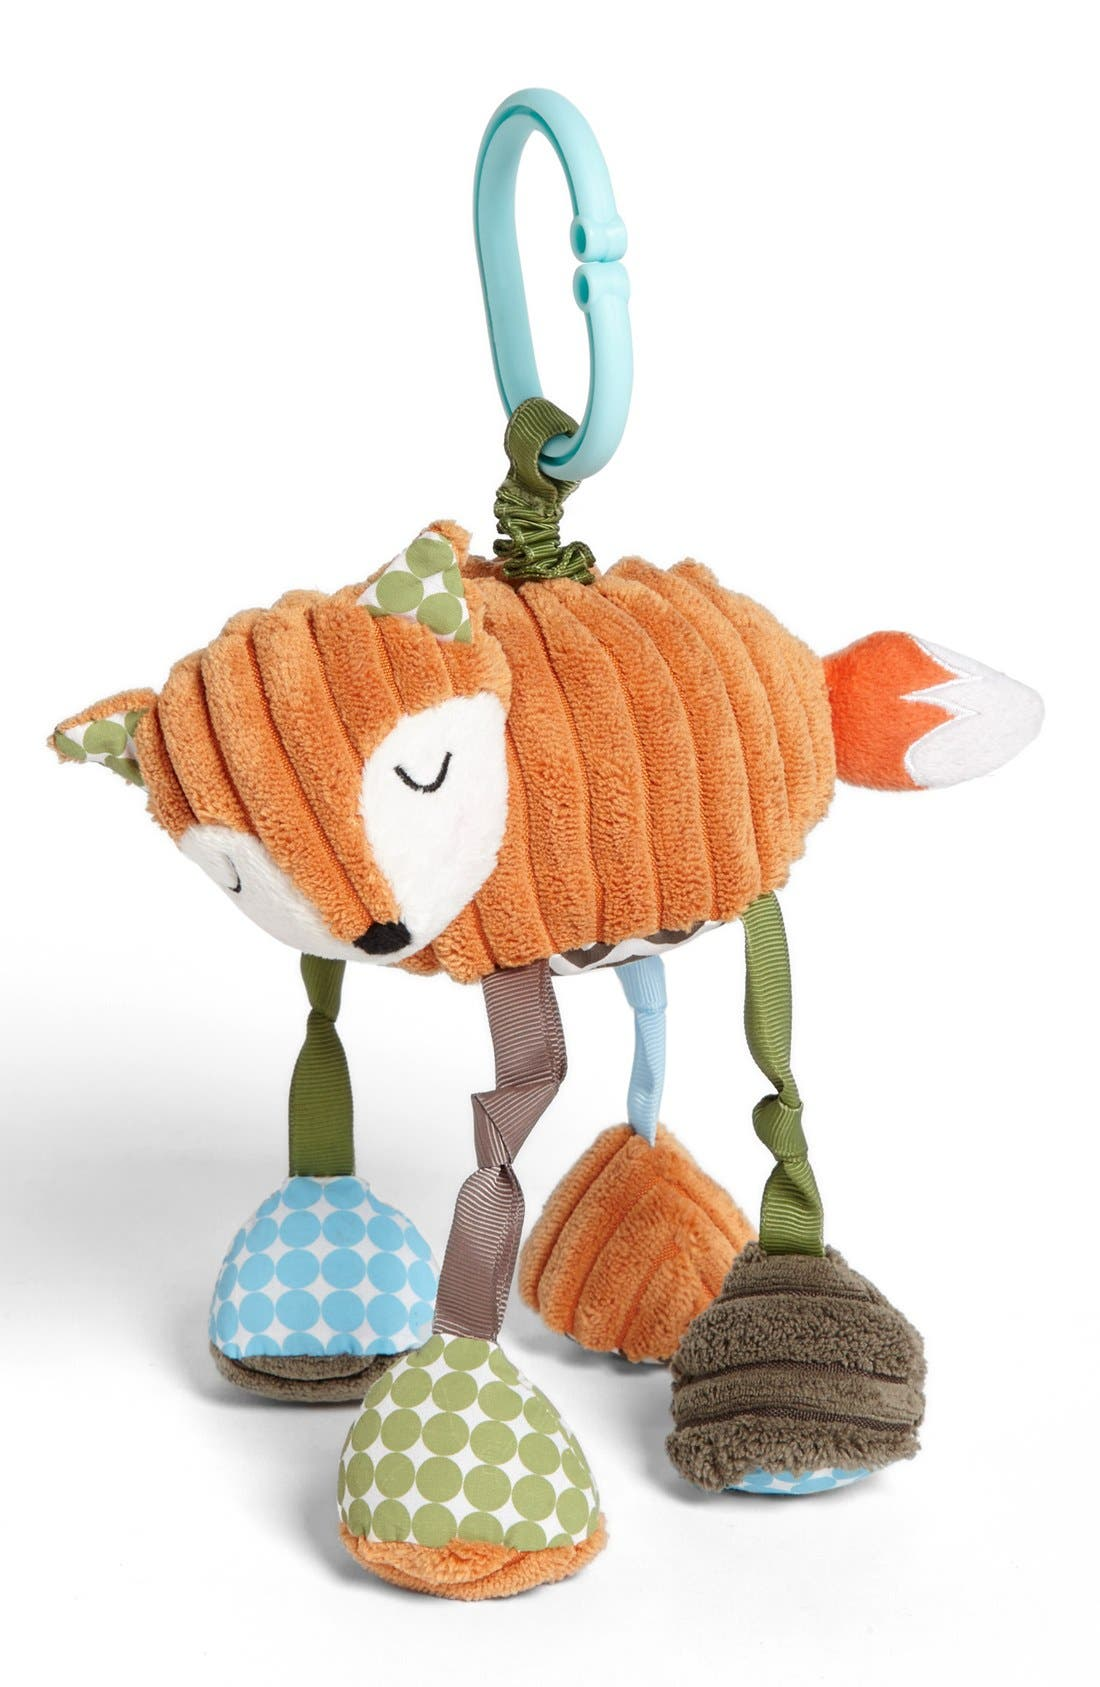 Alternate Image 1 Selected - Mud Pie 'Fox' Stroller Toy